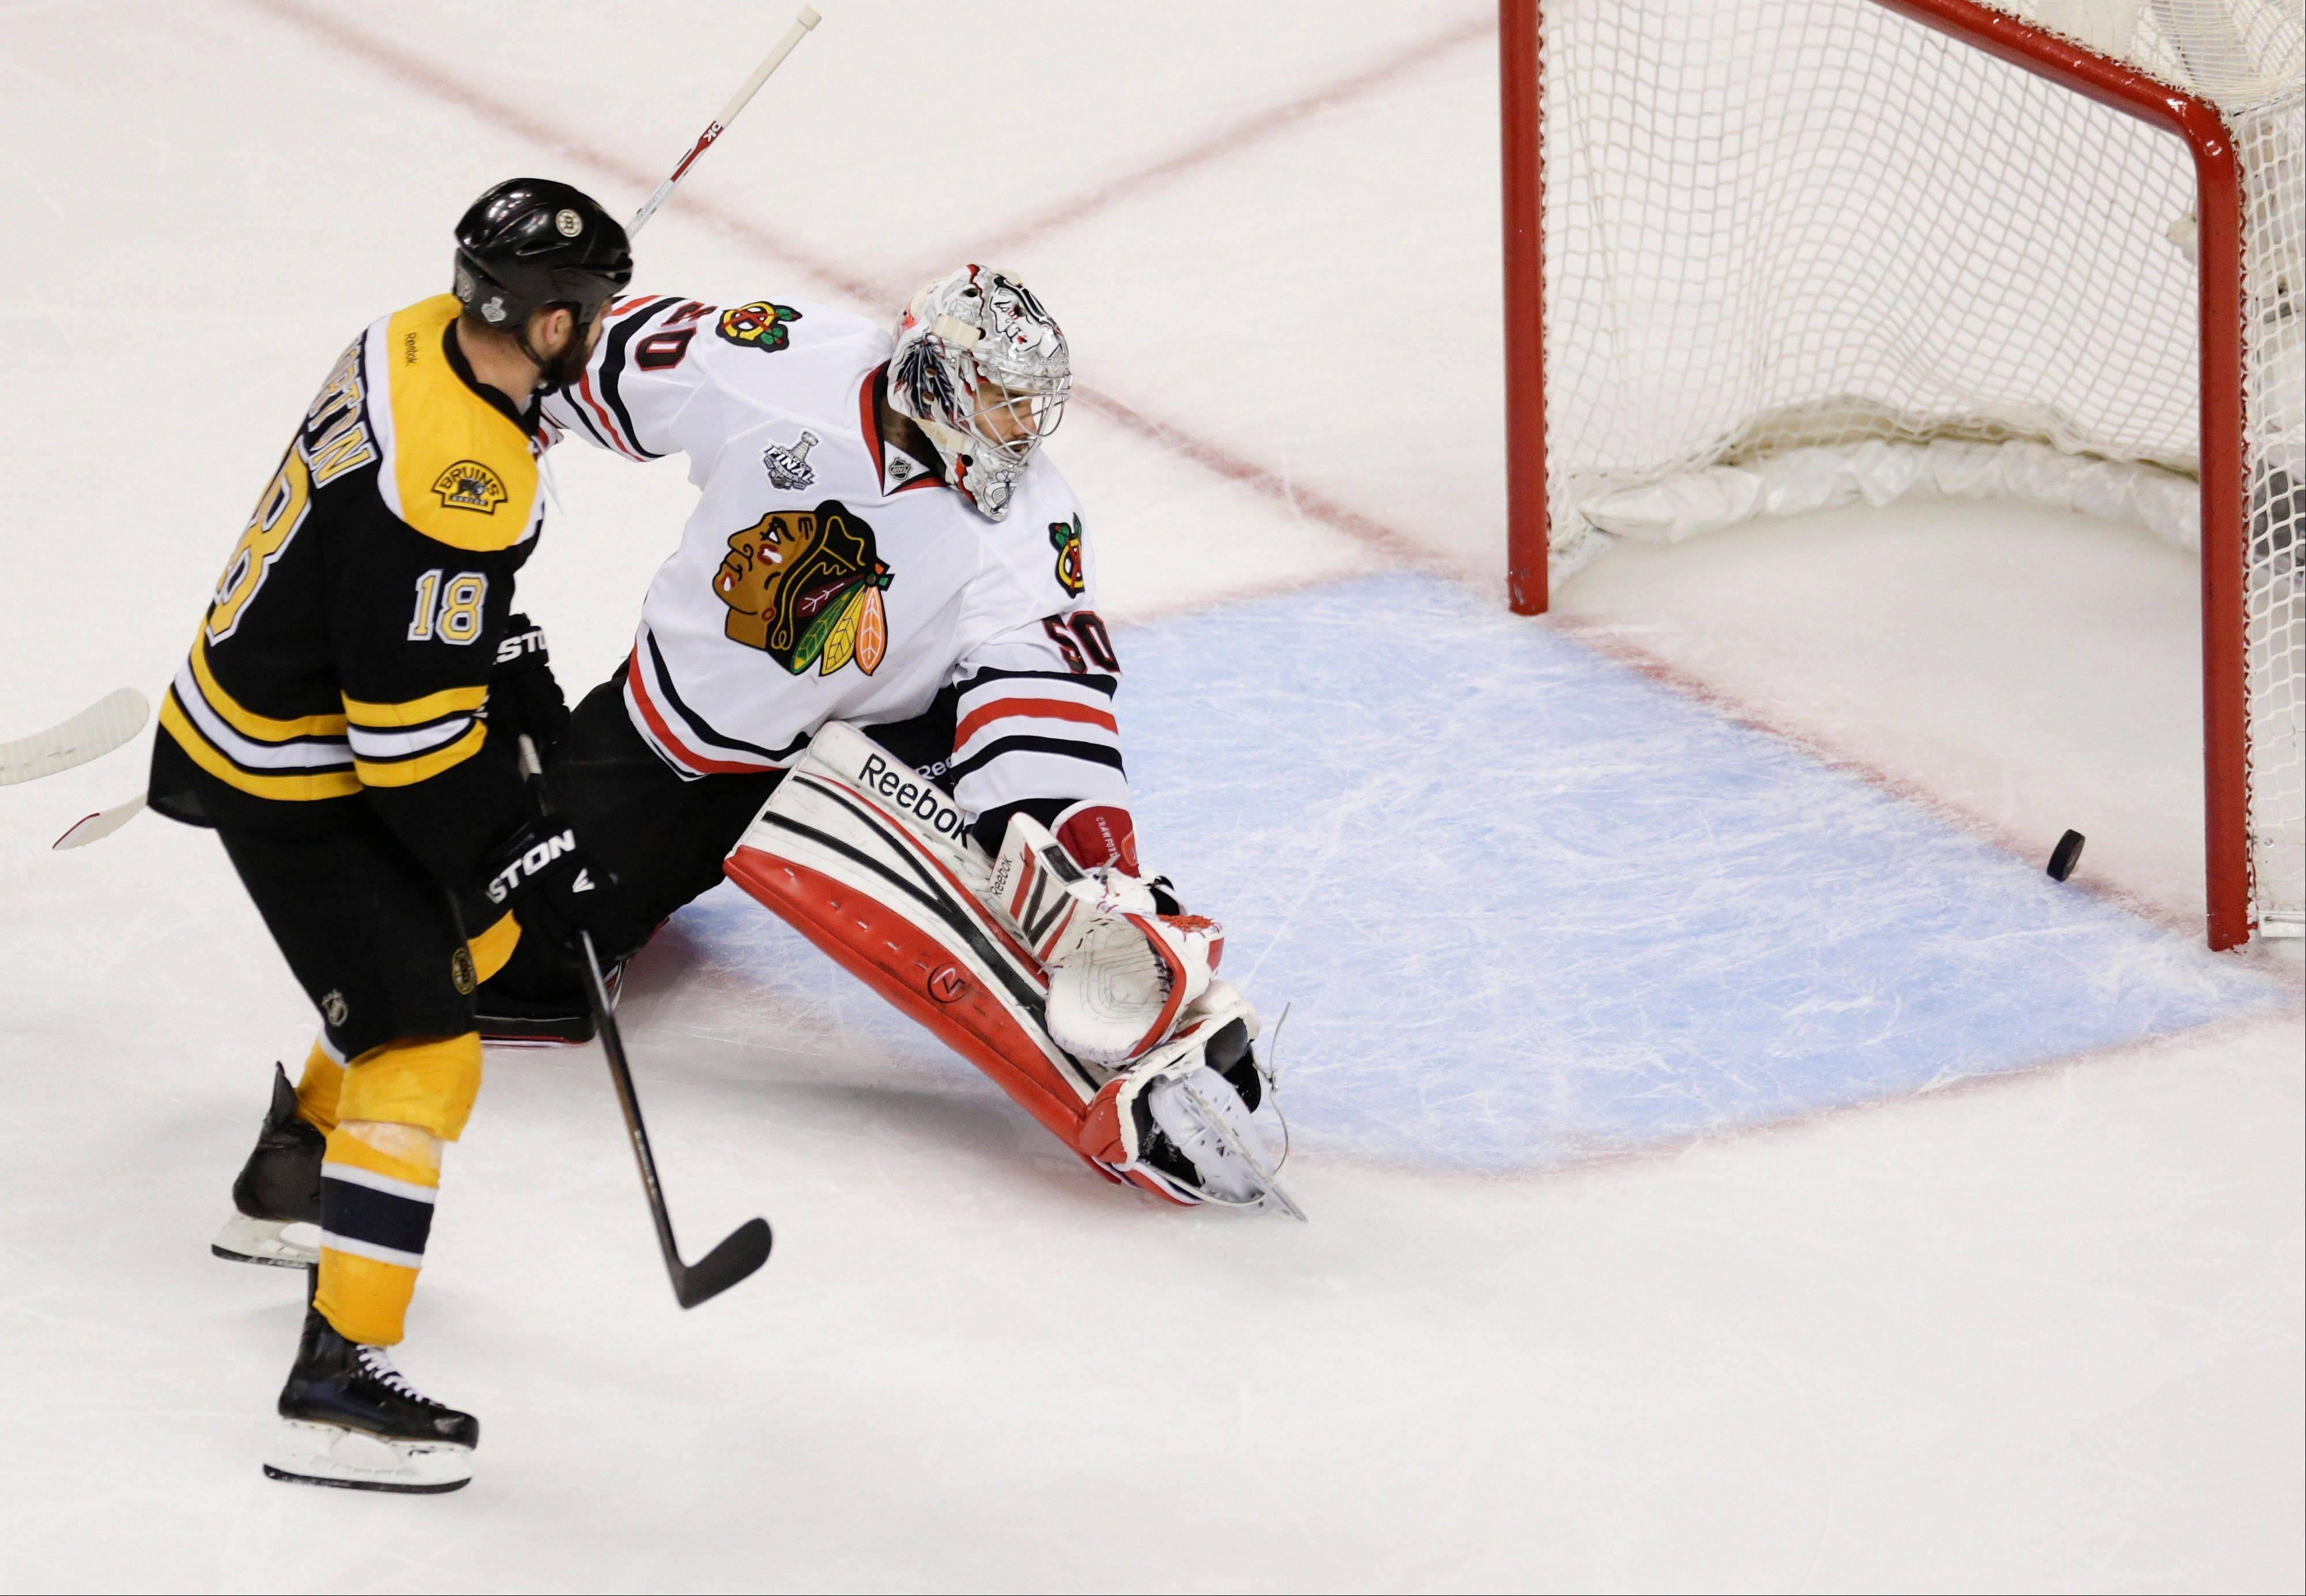 Boston Bruins' right wing Nathan Horton watches defenseman Johnny Boychuk's goal against goalie Corey Crawford during the third period in Game 4 of the NHL hockey Stanley Cup Finals Wednesday. The Bruins seemingly exposed a weakness in Crawford's game as all 5 goals he gave up were to the high side of his glove.